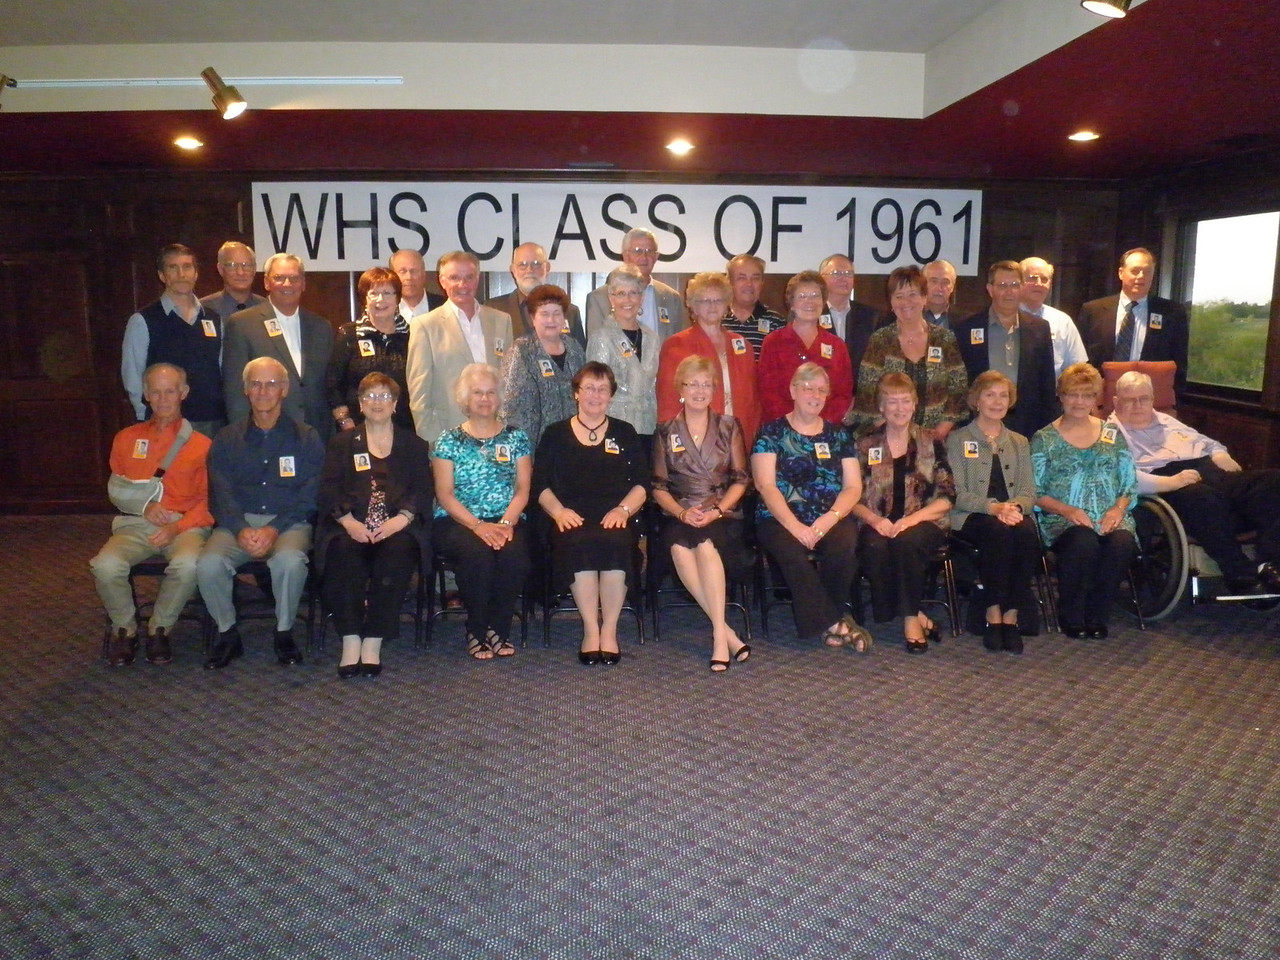 I attended my 50th Waterloo High School reunion on Friday night. Our graduating class had 62 members. 31 of the surviving 52 classmates were at the reunion which is a good turnout. This was only the second reunion I had attended. It was hard to recognize some people who I had not seen for 50 years.